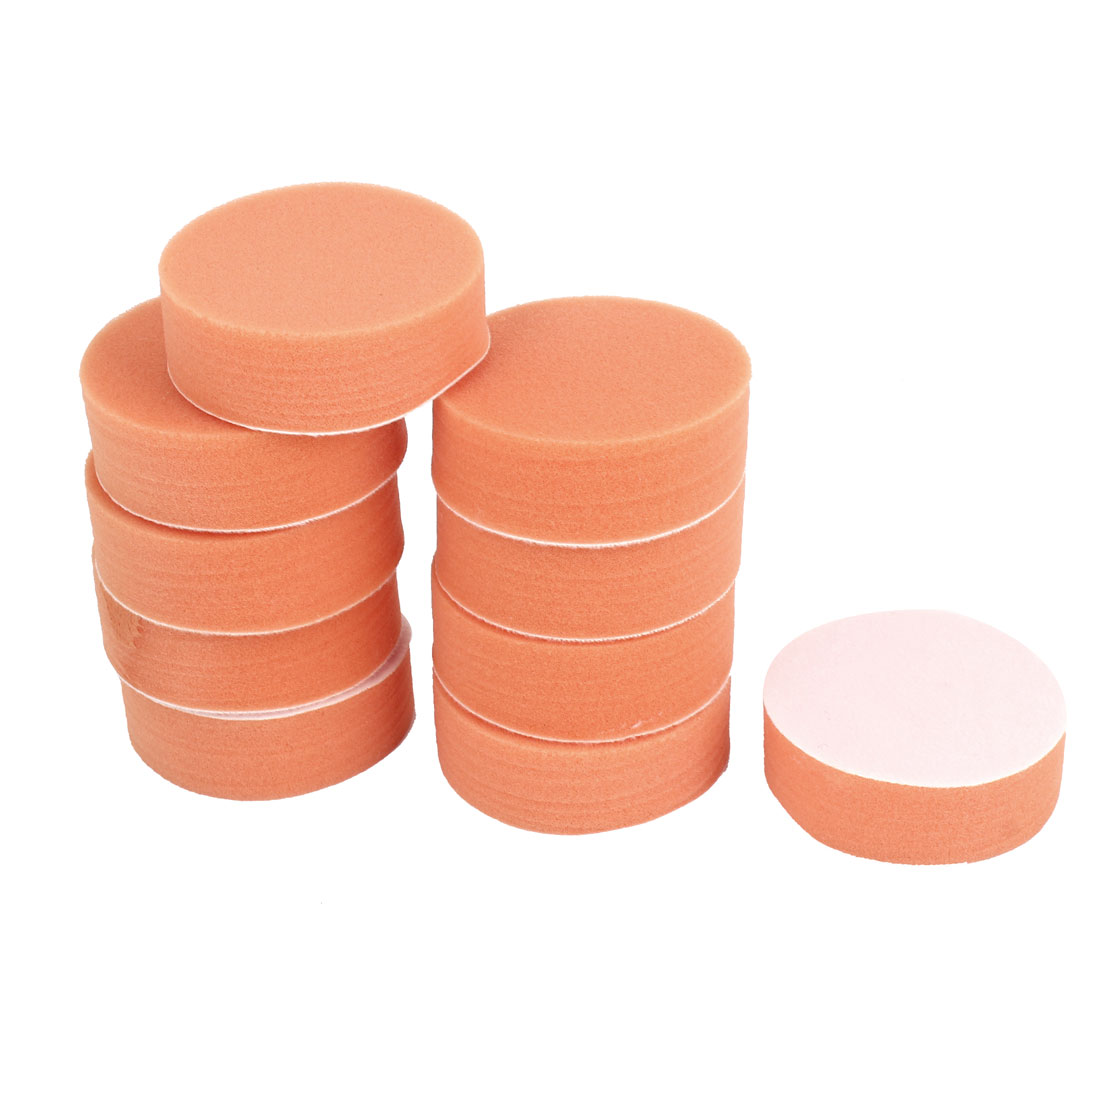 10 Pcs Orange Round Soft Sponge Car Washing Cleaning Pad Cushion 80mm Dia